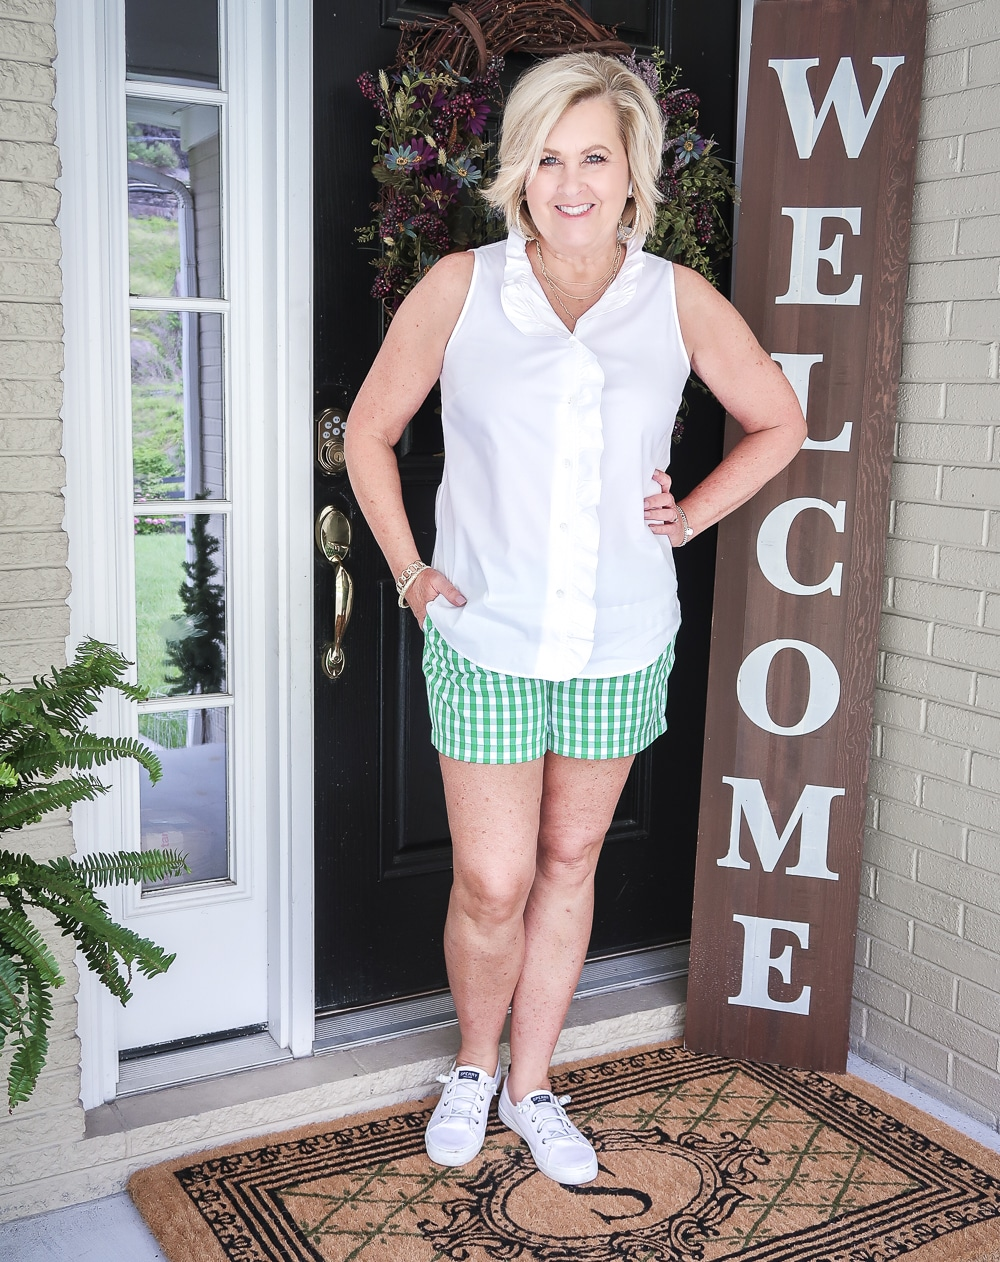 FASHION BLOGGER 50 Is Not Old wearing a sleeveless top with a ruffled placket and green gingham shorts with a pair of Sperry slip on sneakers.